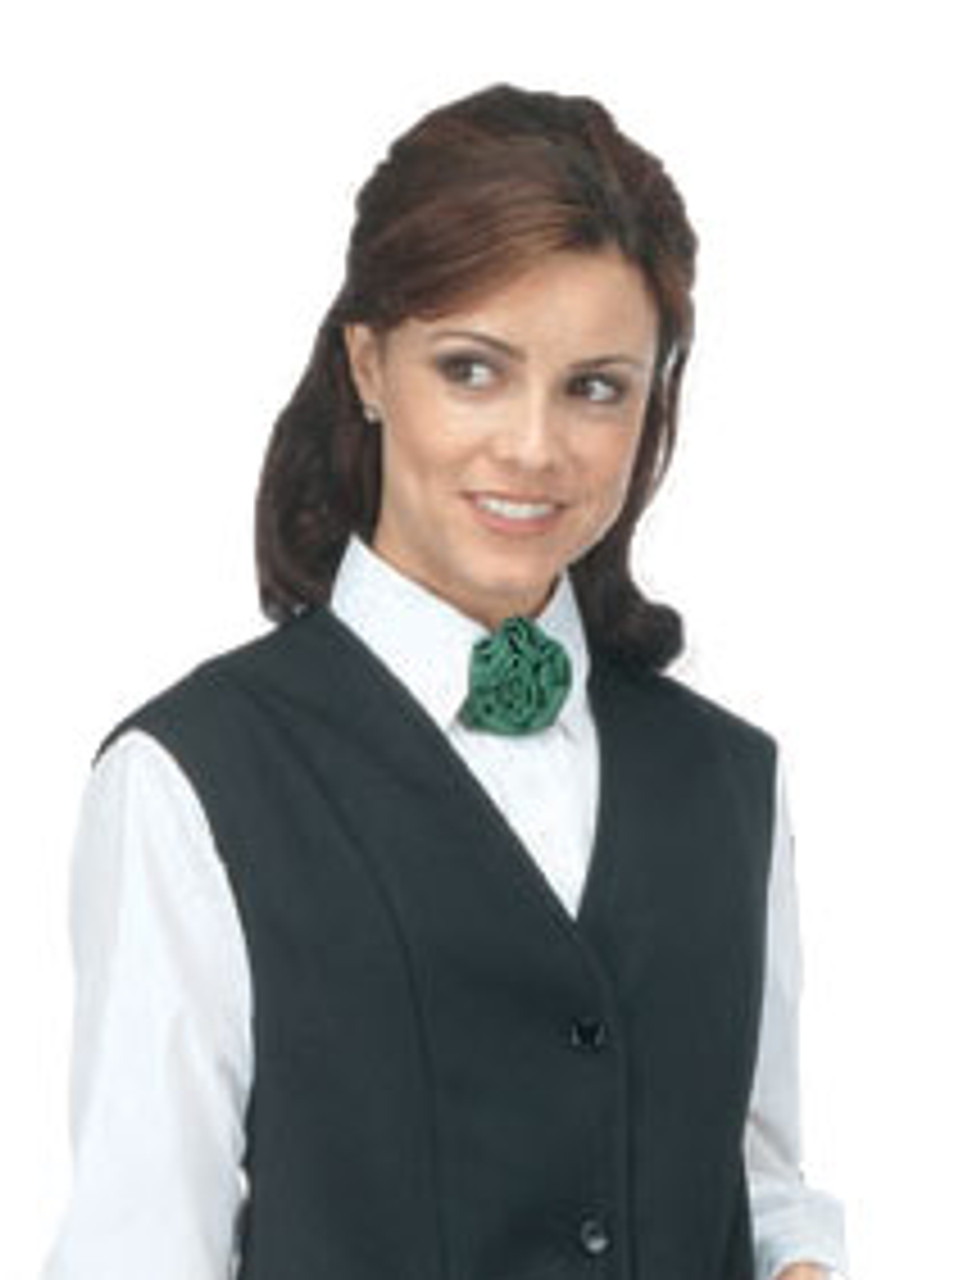 Feminine rosette tie adds a different style to this waitress